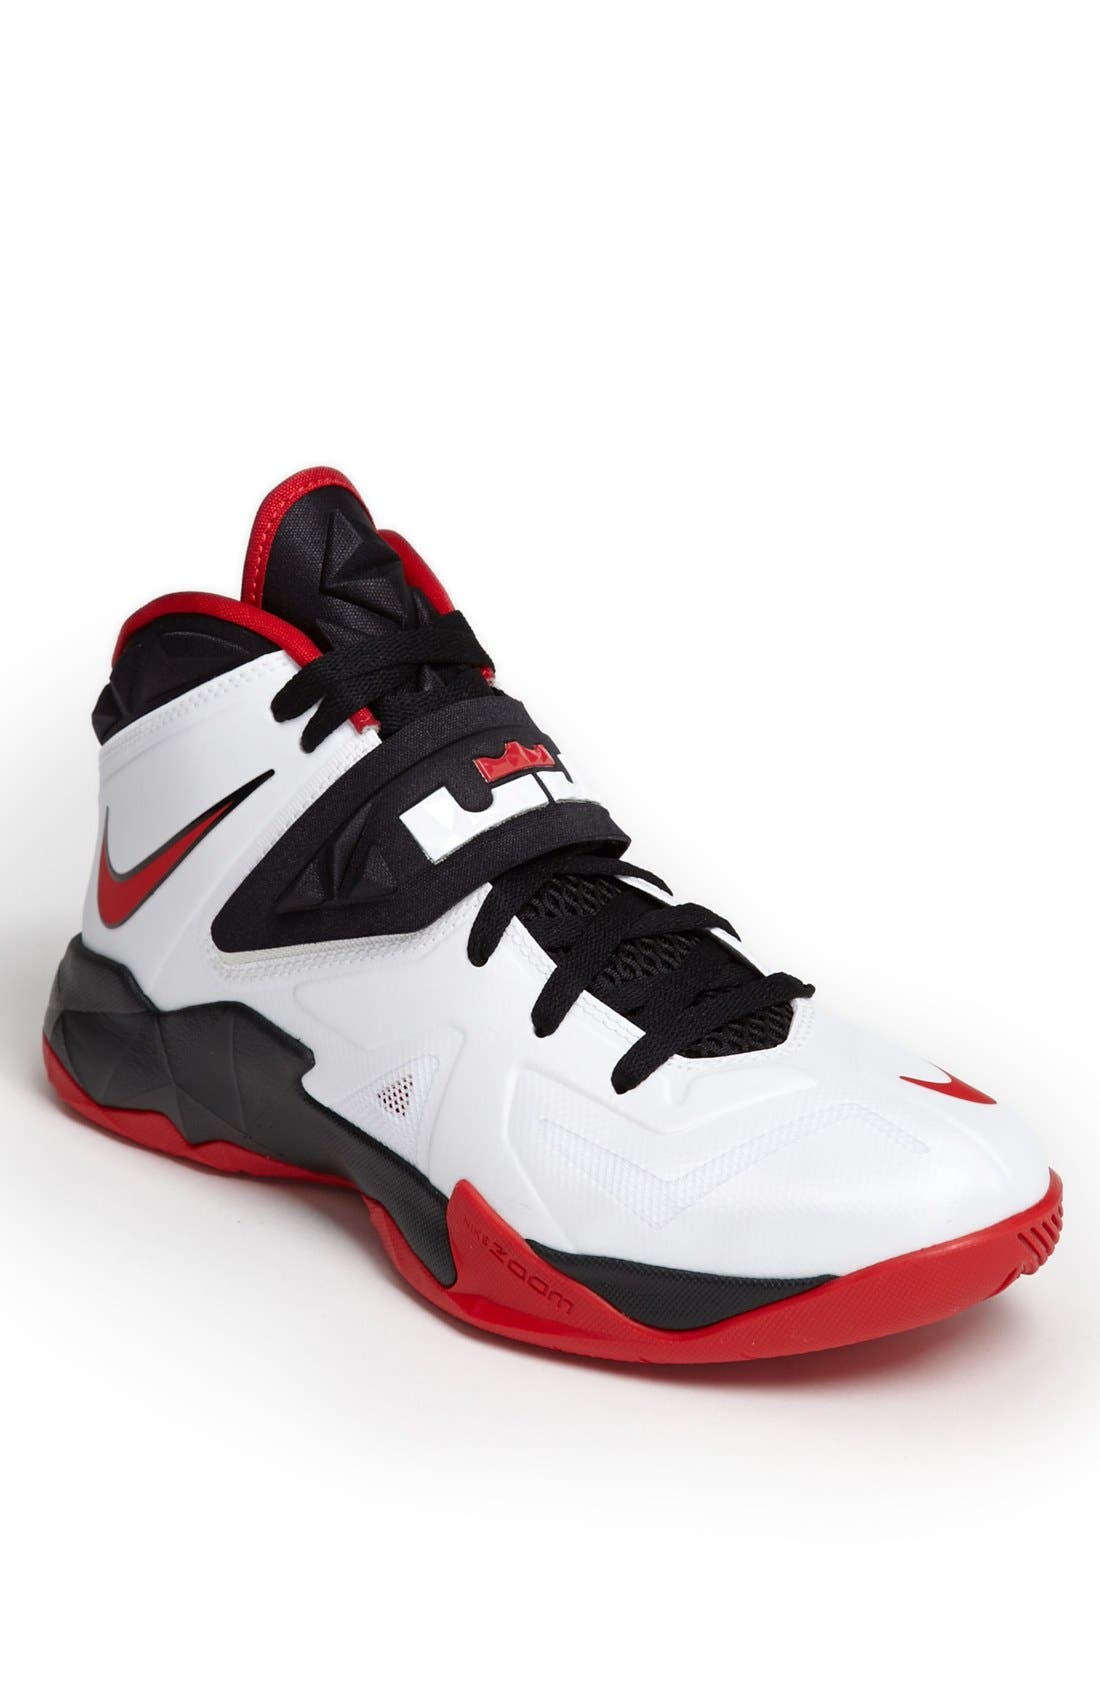 Alternate Image 1 Selected - Nike 'Lebron Zoom Soldier VII' Basketball Shoe (Men)